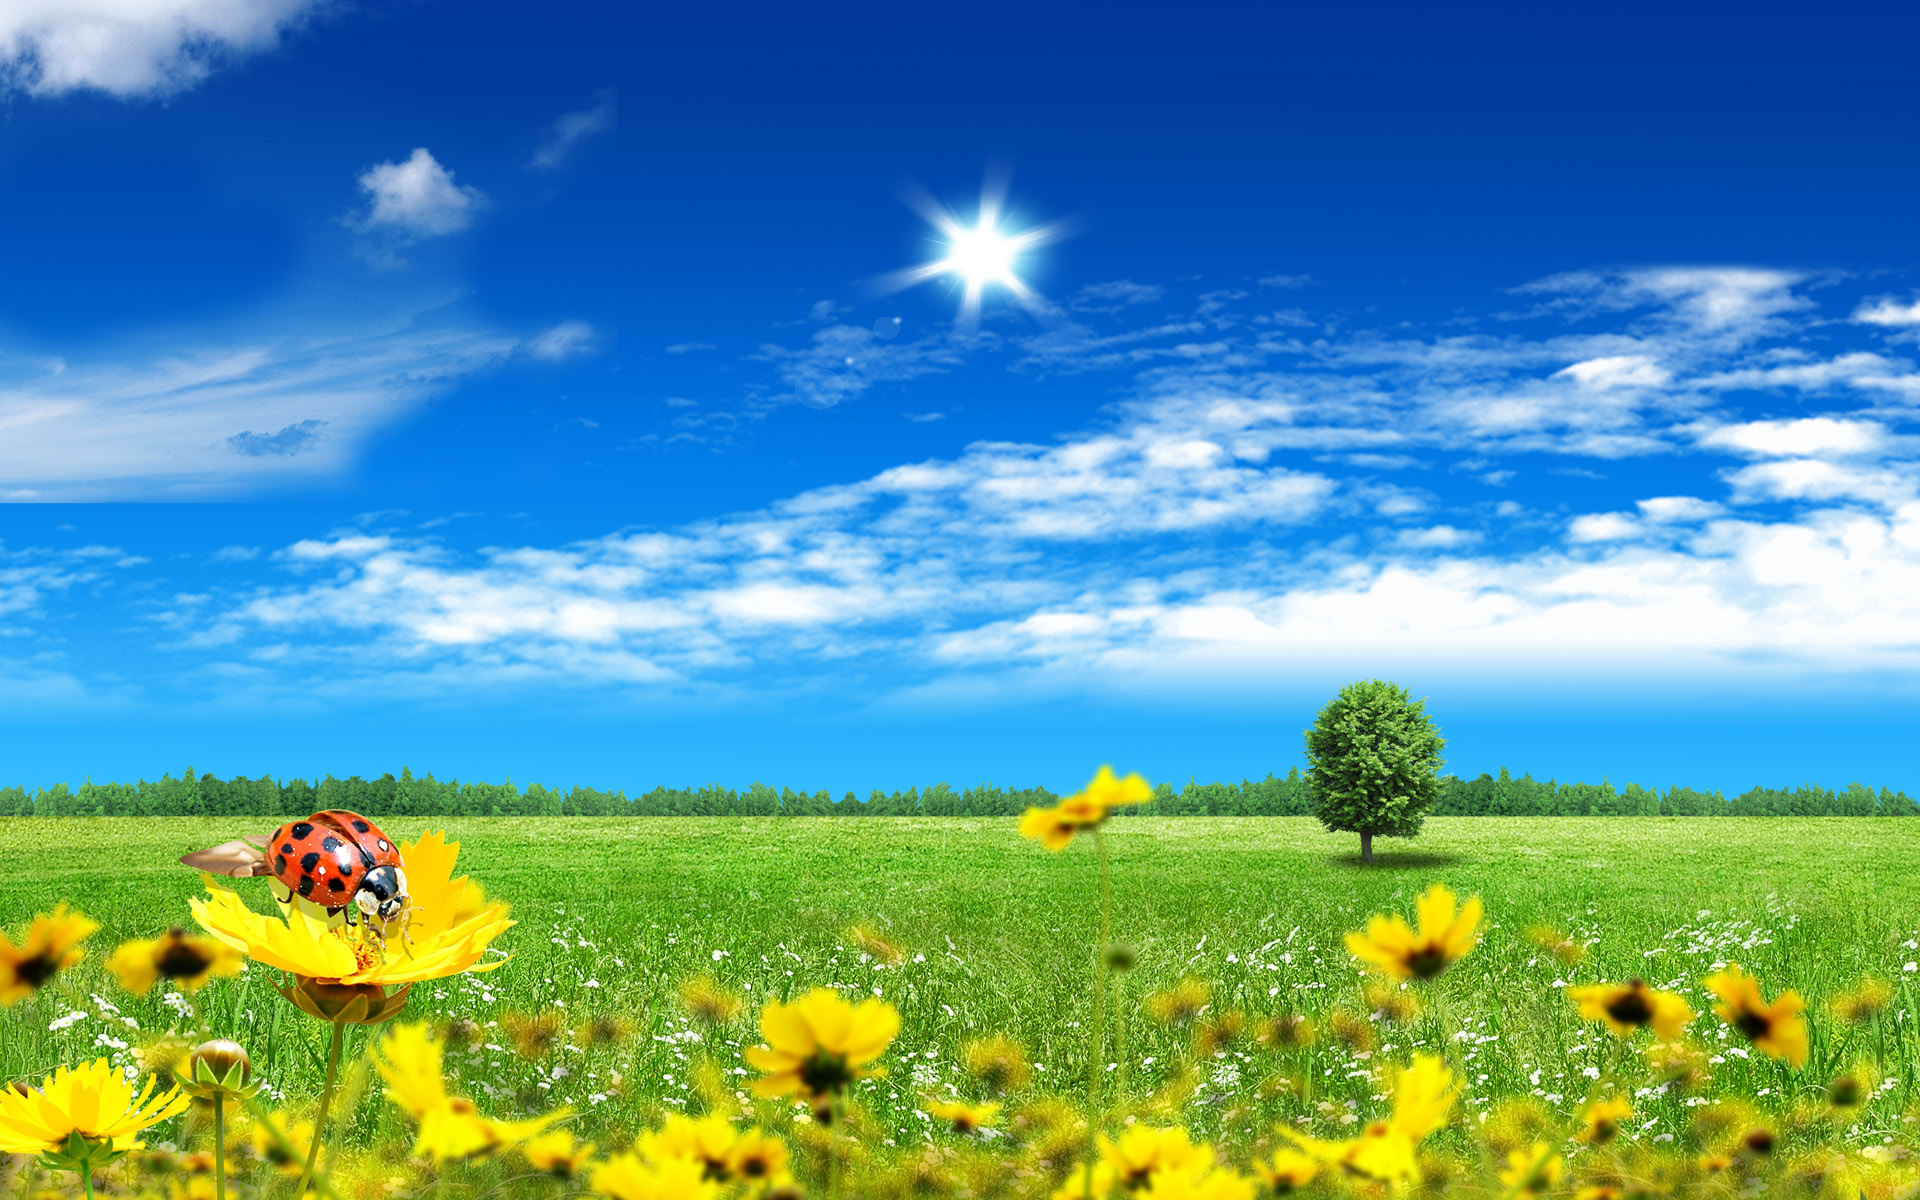 summer fantasy landscape for desktop wallpaper cool desktop background 1905